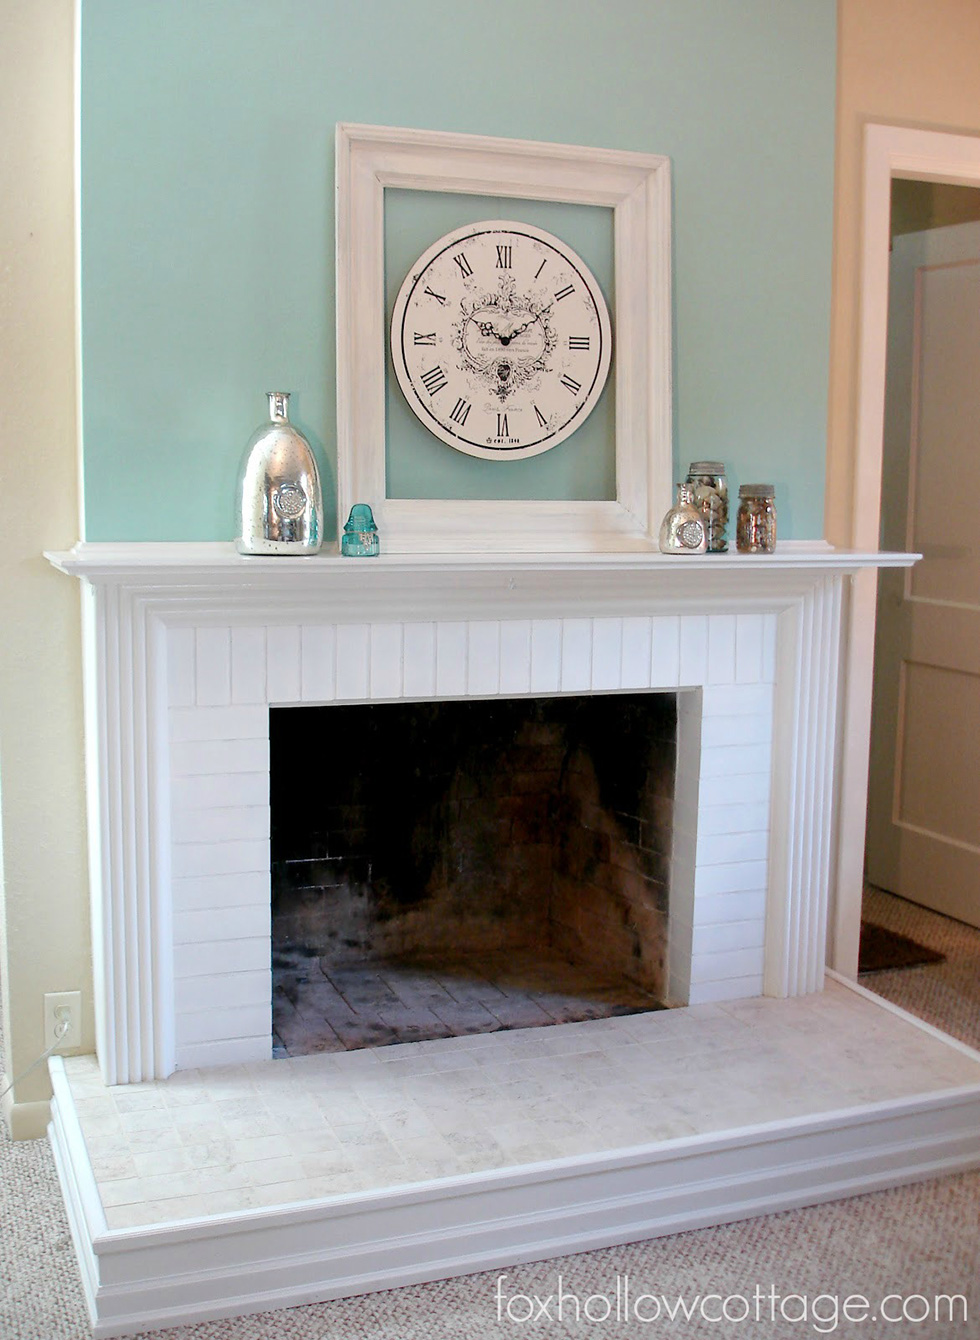 Before and after fireplace makeovers fireplace surrounds before and after fireplace makeovers fireplace surrounds houselogic doublecrazyfo Choice Image